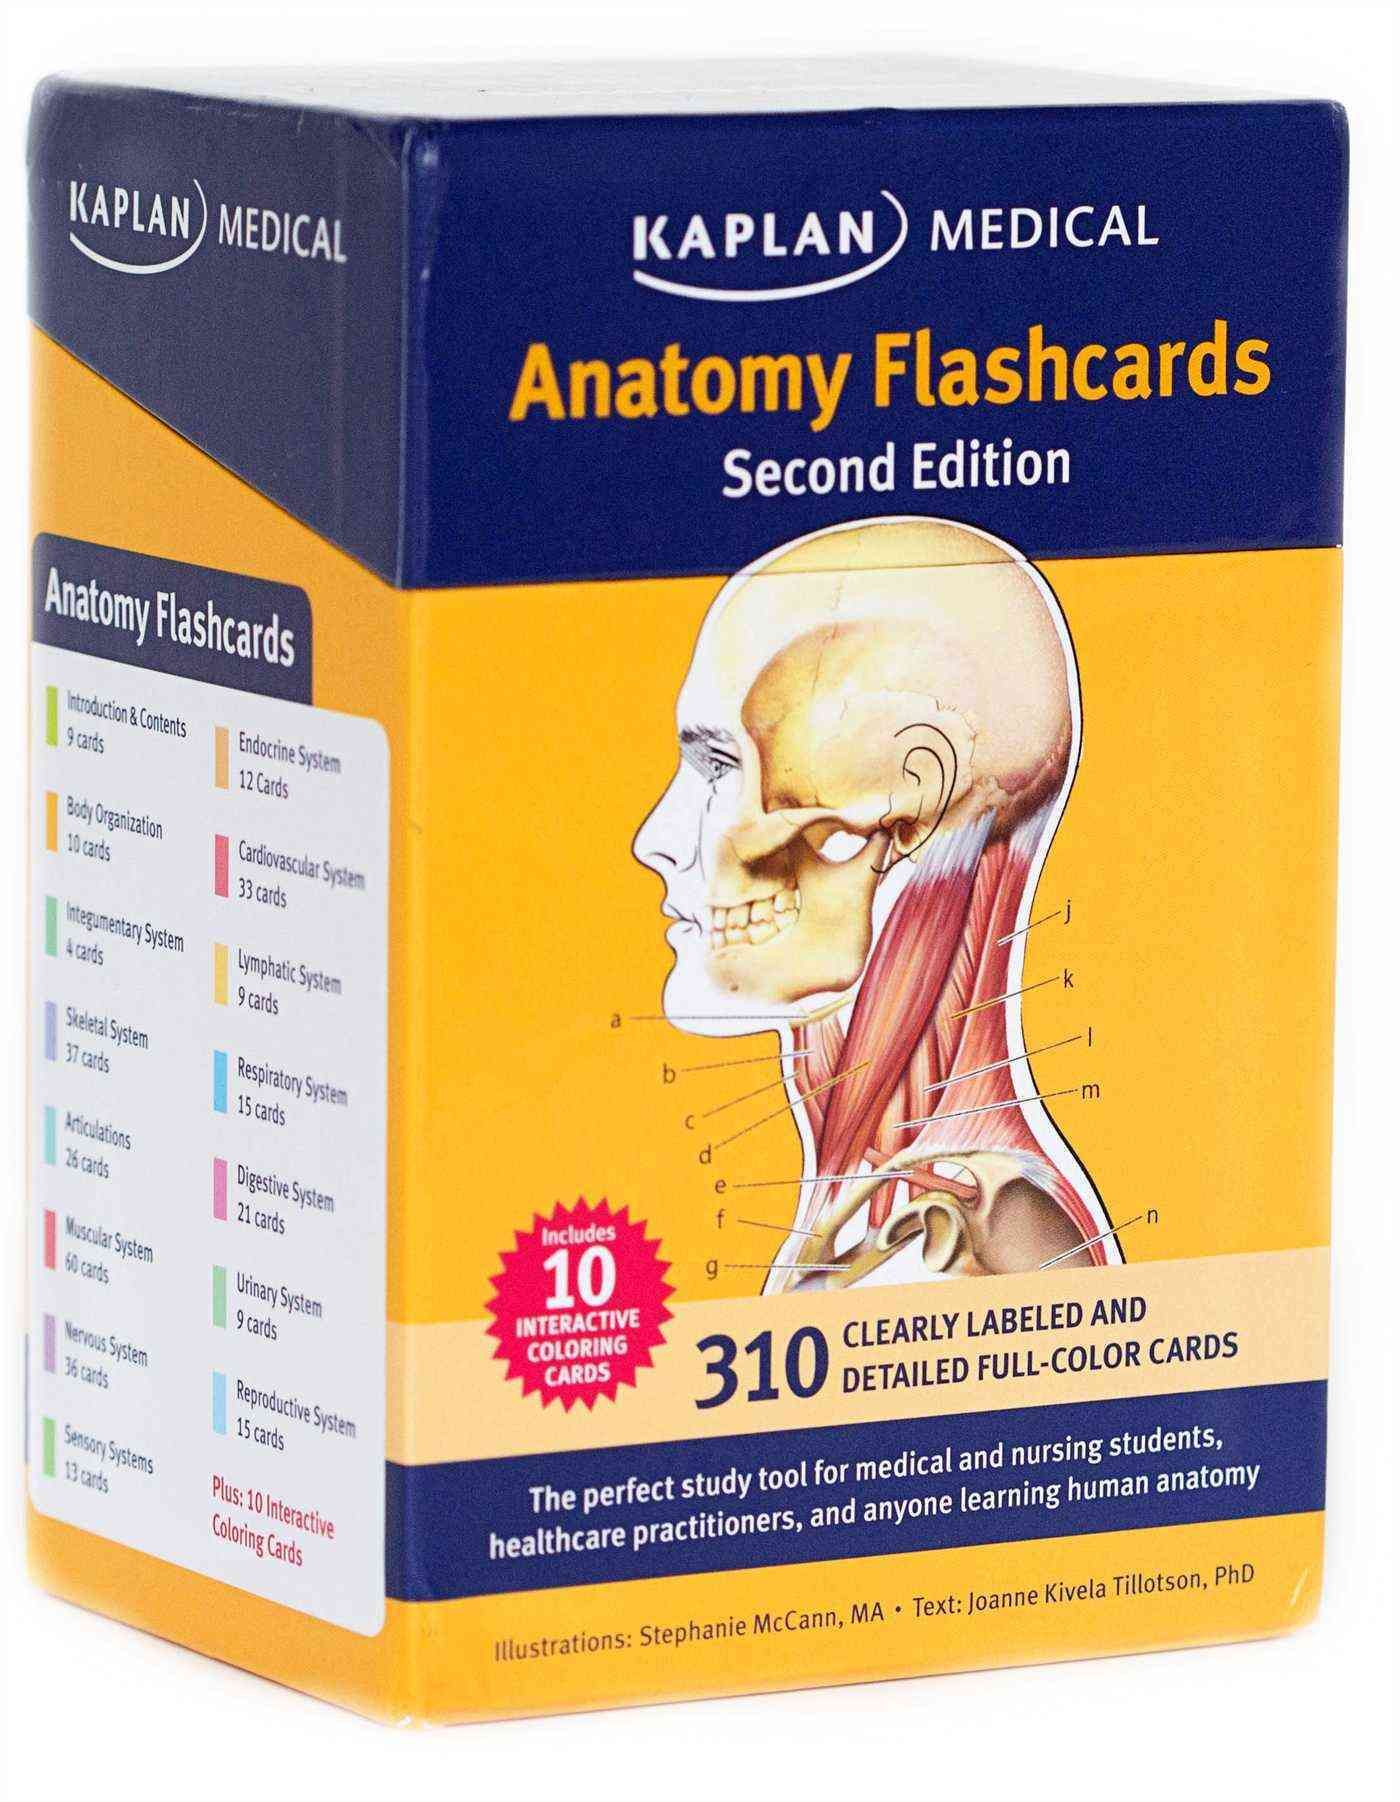 Kaplans Anatomy Flashcards, Second Edition, is the ideal human ...